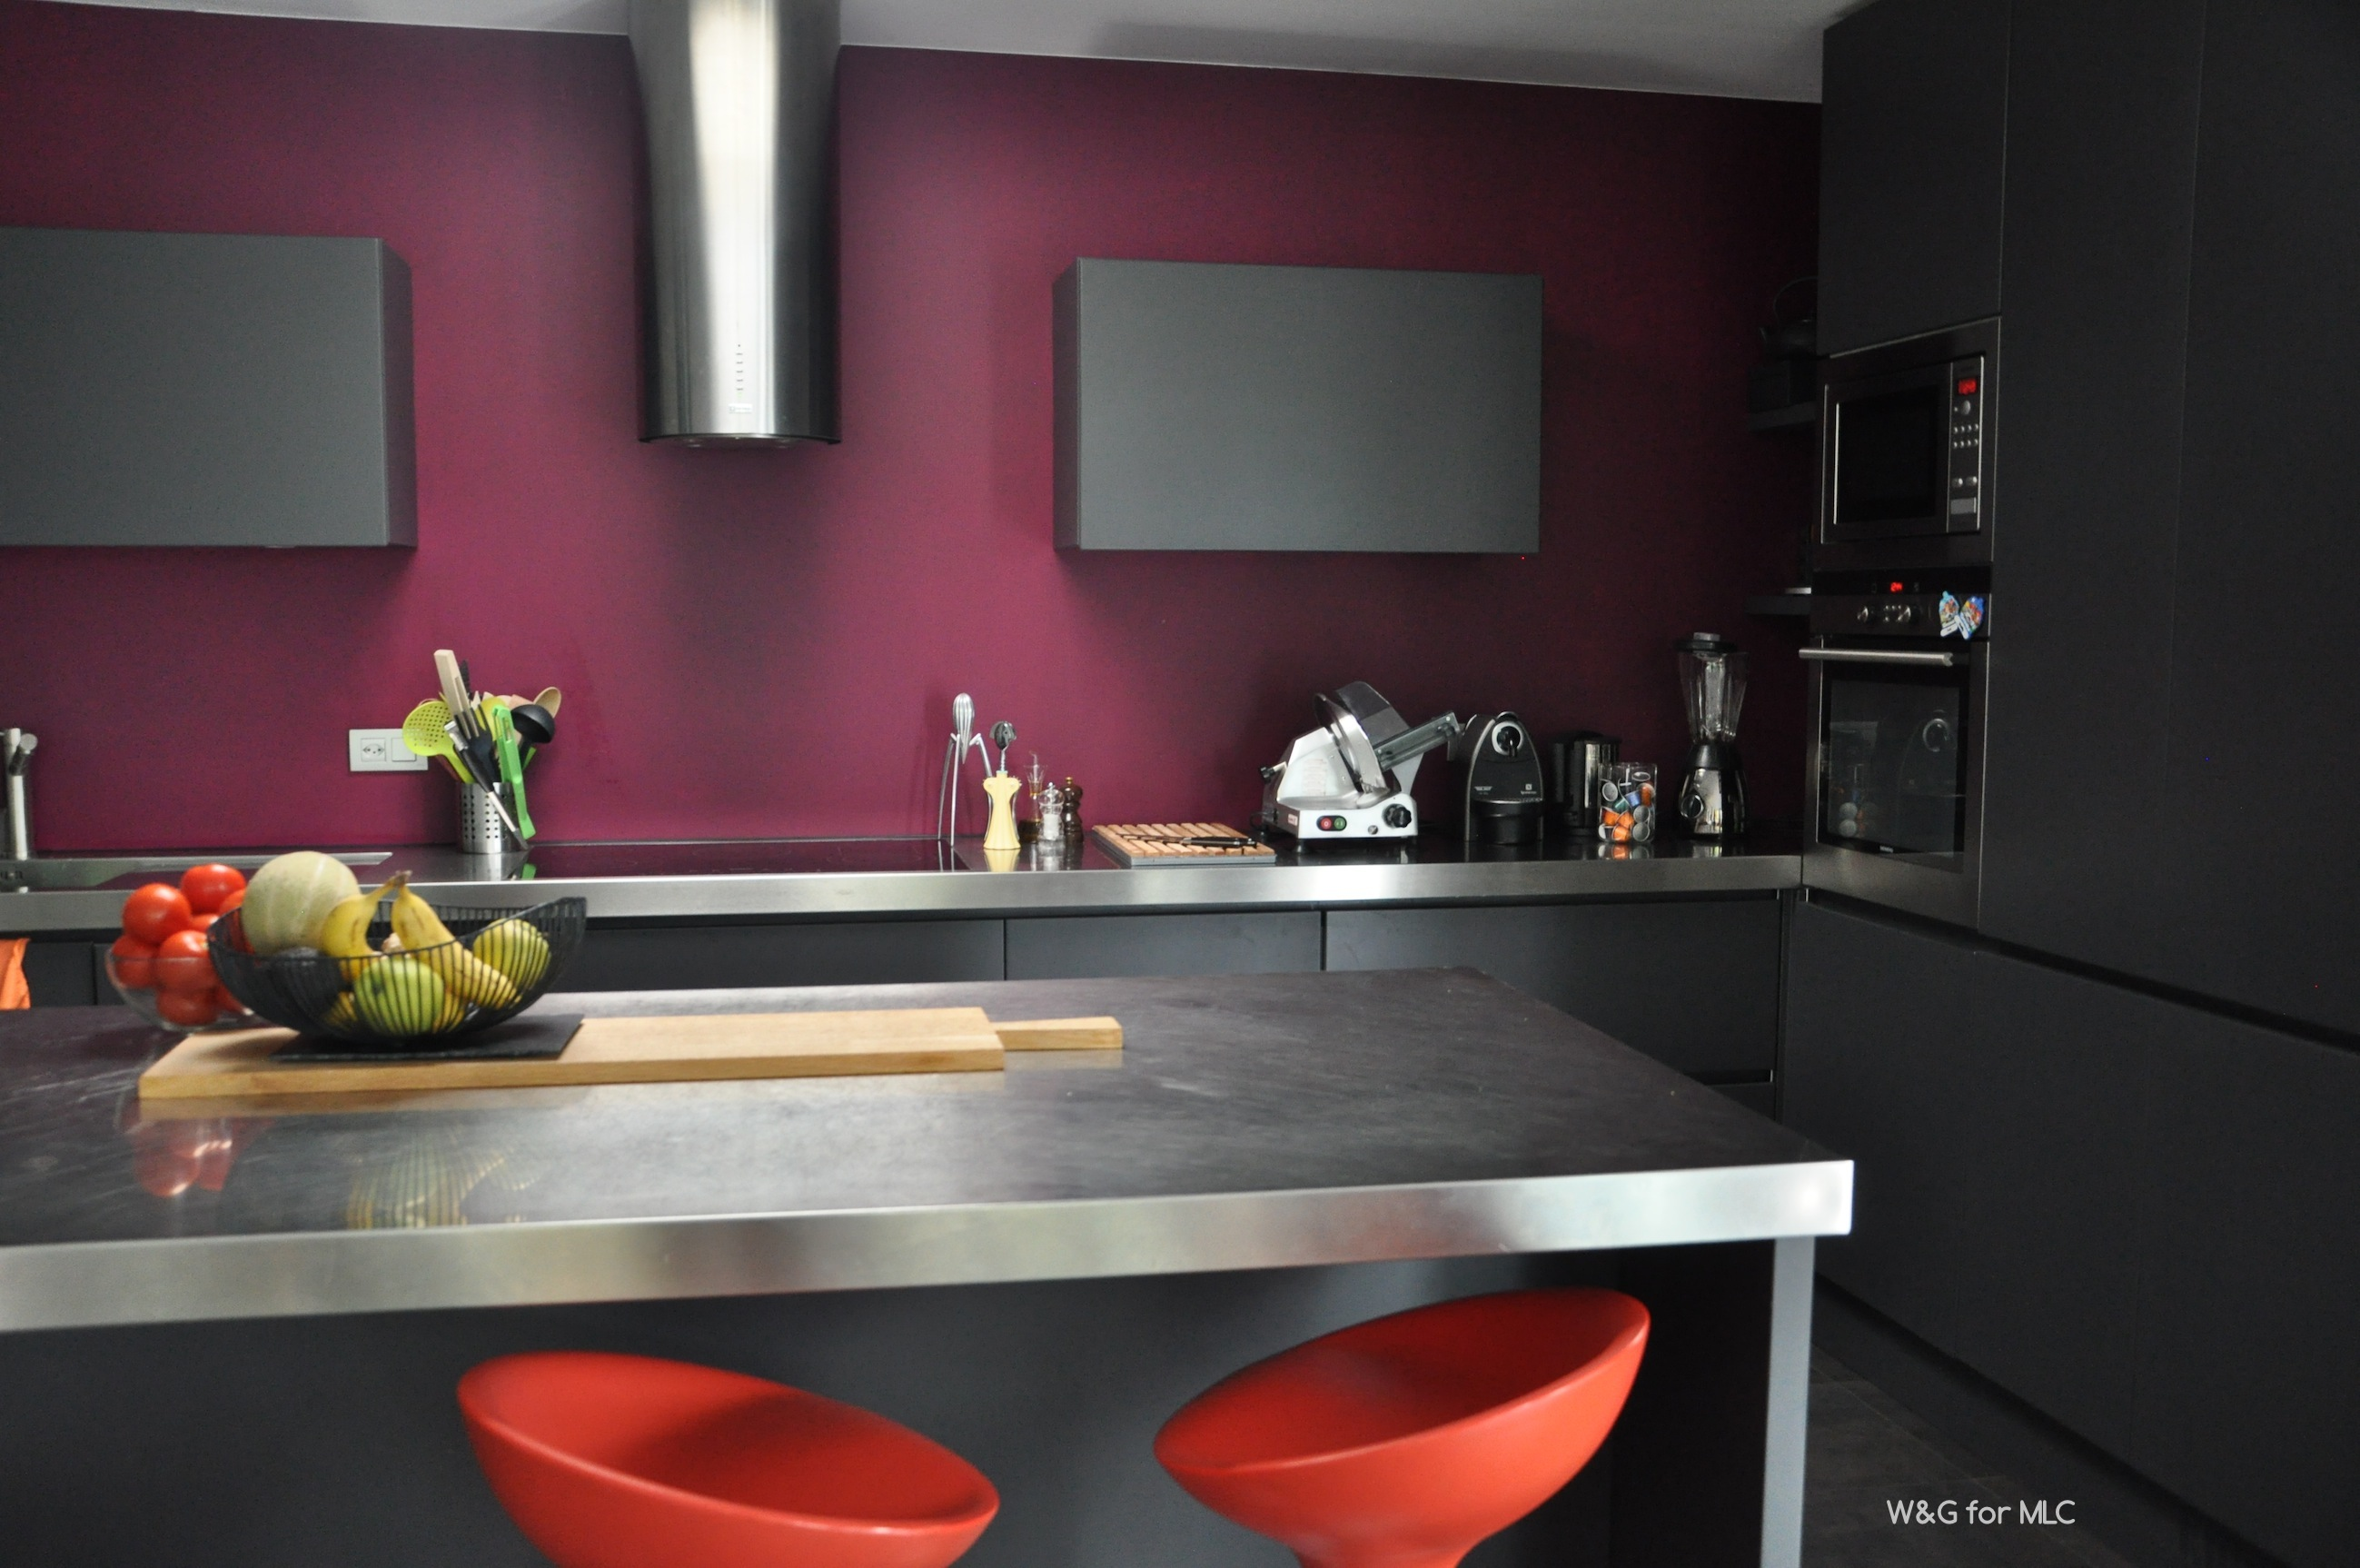 cuisine anthracite sur fond fushia archives le blog d co. Black Bedroom Furniture Sets. Home Design Ideas